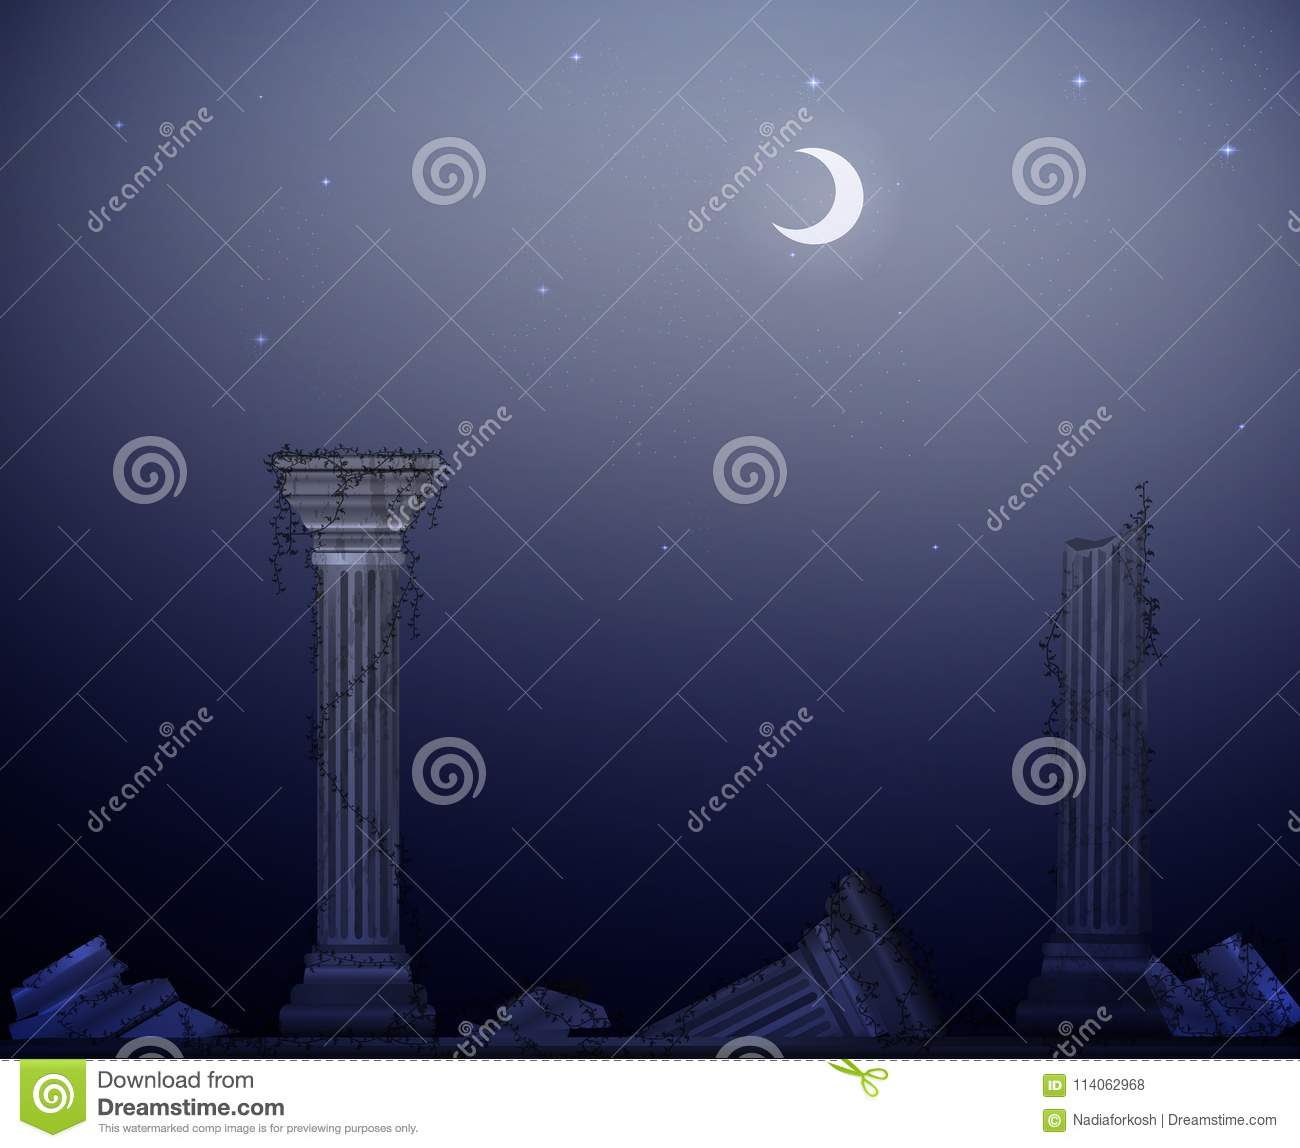 Moon night and ruins of marble columns with liana, the decline of civilization,antique landscape, theater decoration,